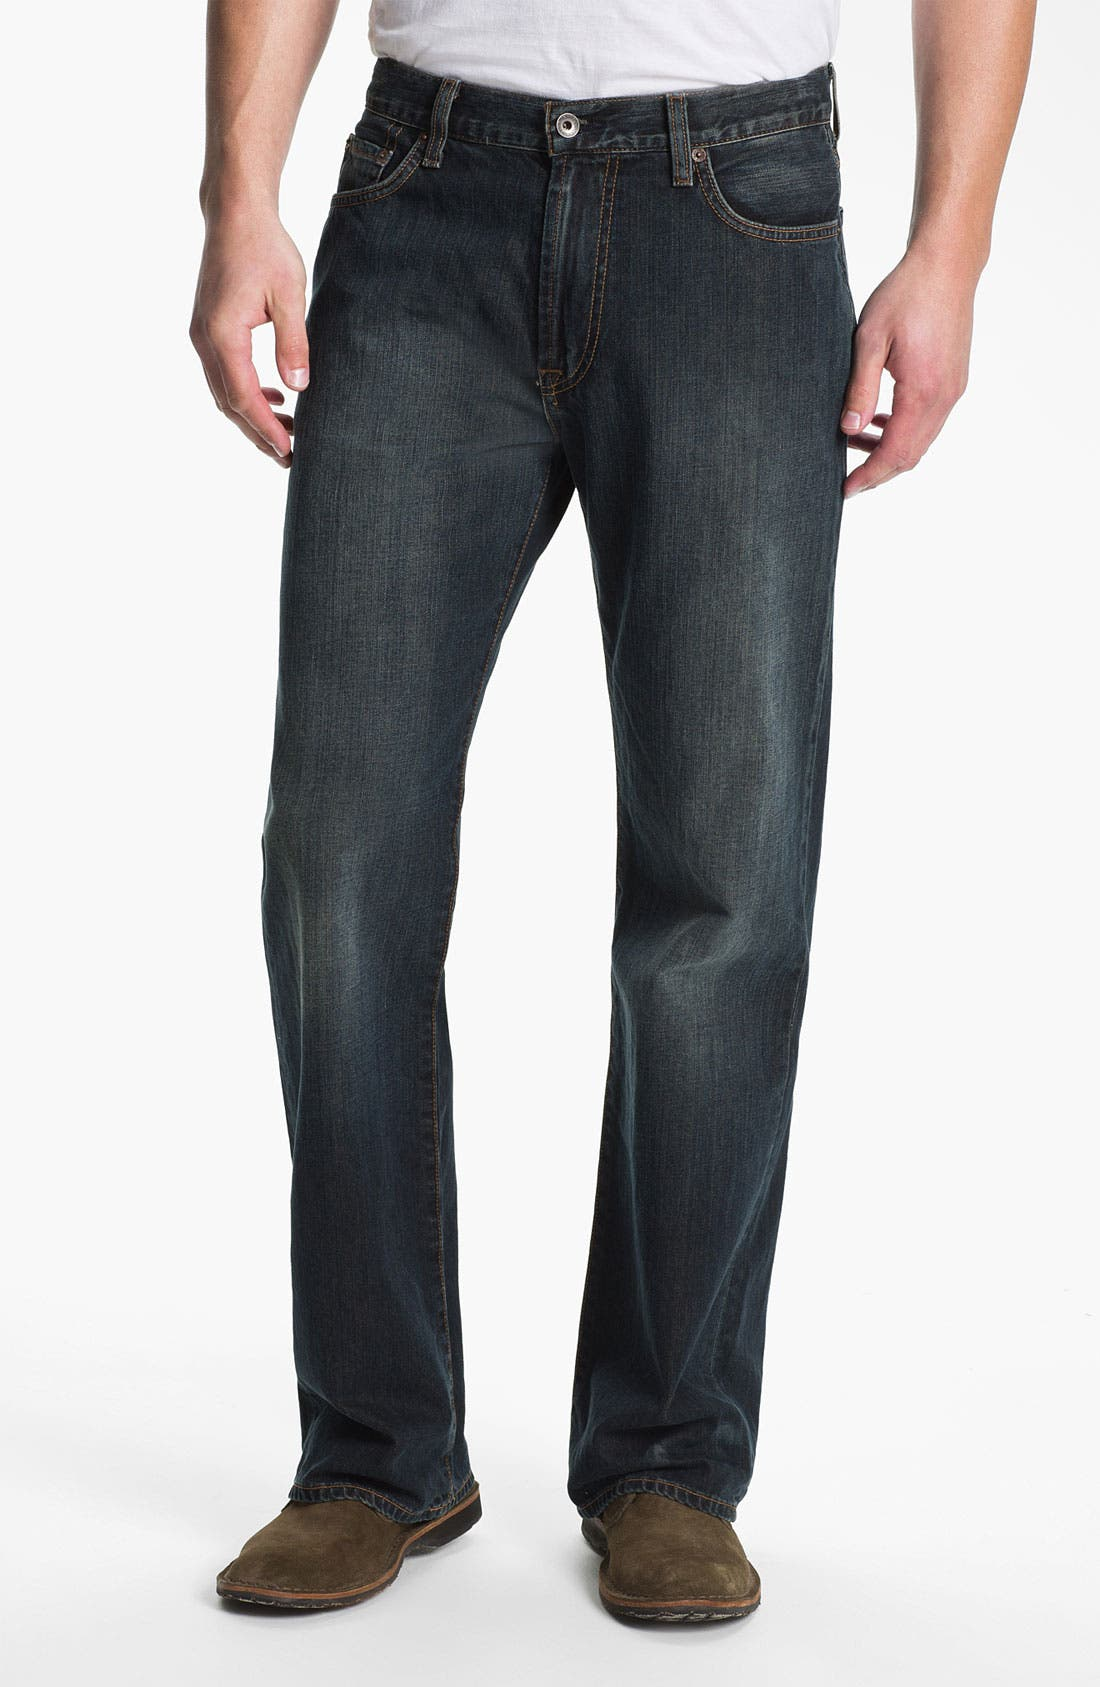 Alternate Image 1 Selected - Lucky Brand '181' Relaxed Straight Leg Jeans (Love train)